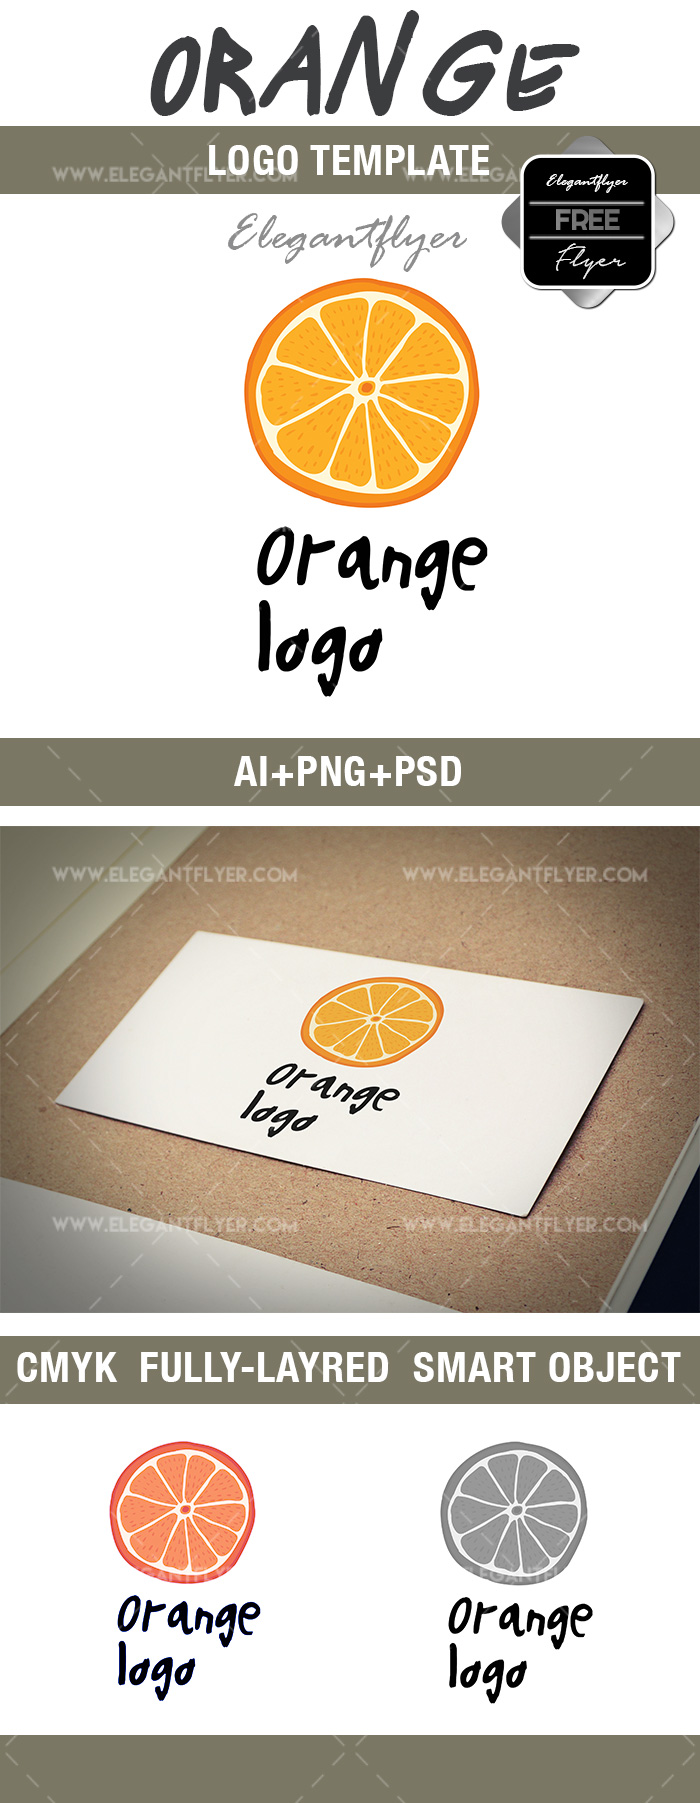 Orange – Free Logo Template